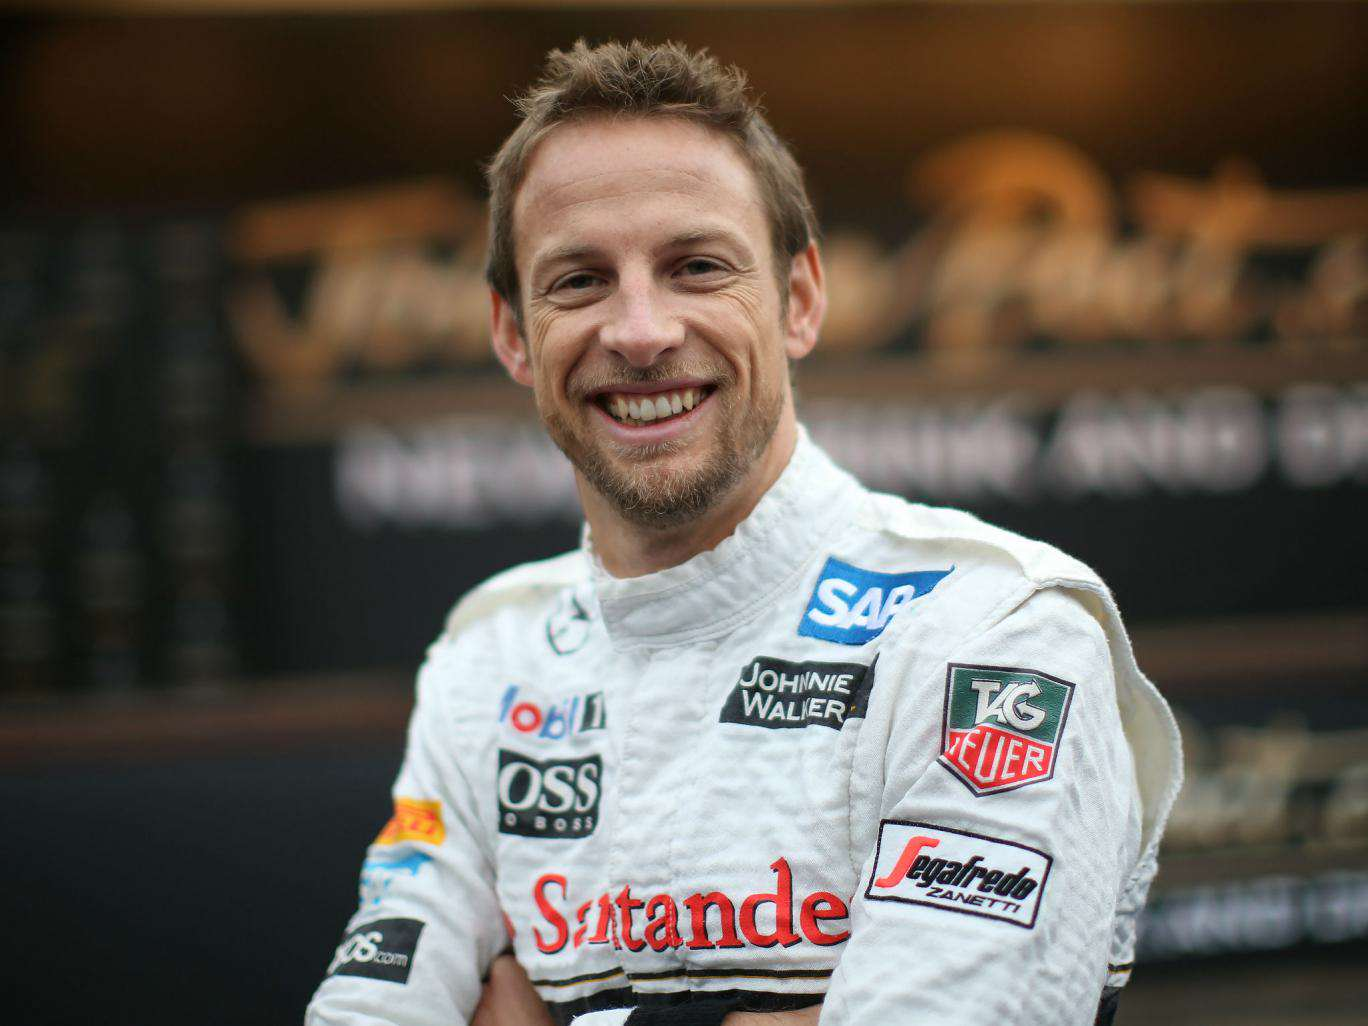 Top Gear Fans Have Already Found A Replacement For Chris Evans jenson button